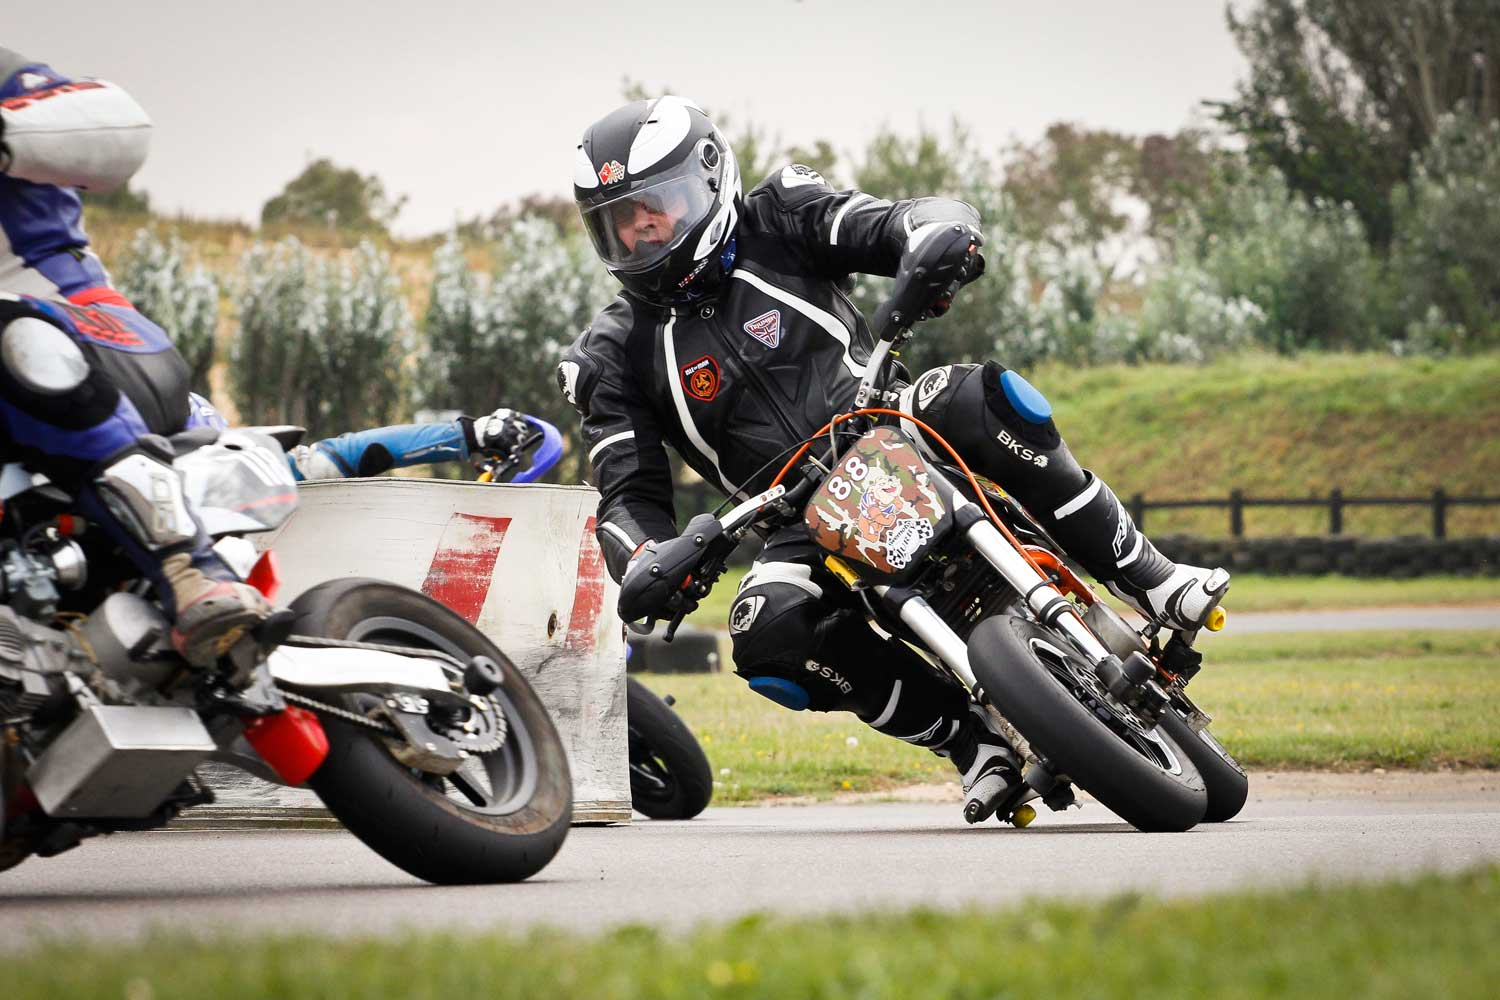 You'll find all ages racing – this guy's 61